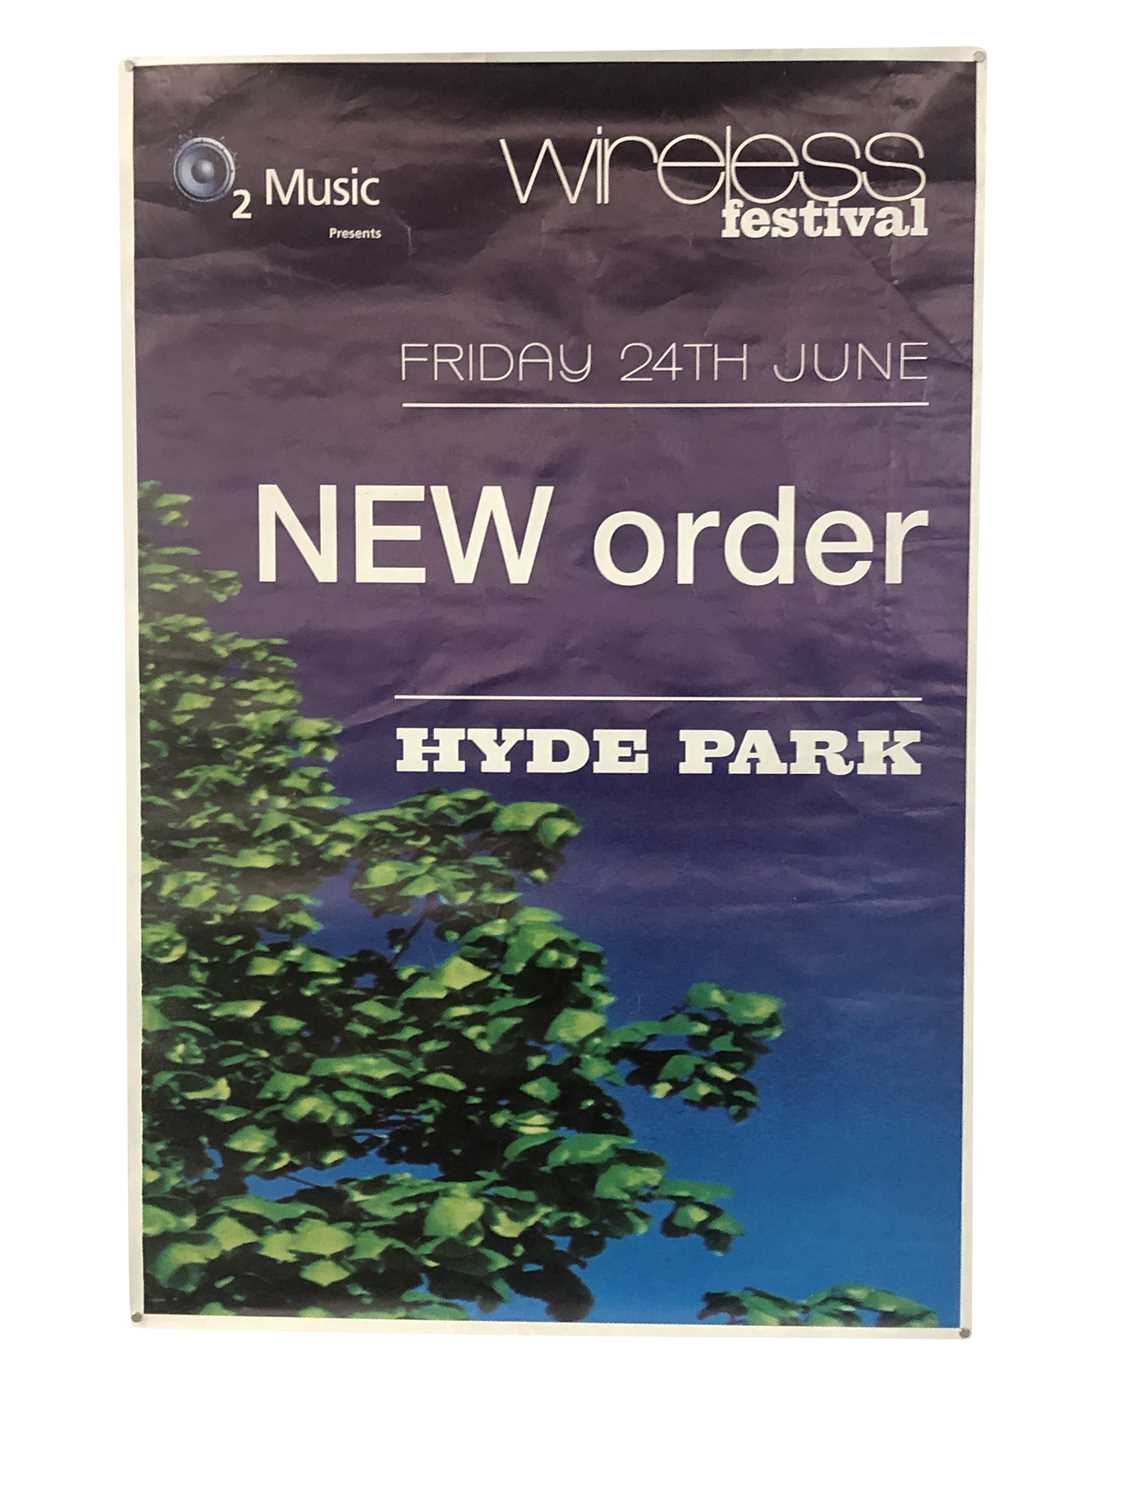 NEW ORDER PROMO & GIG POSTERS COLLECTION - Image 6 of 7